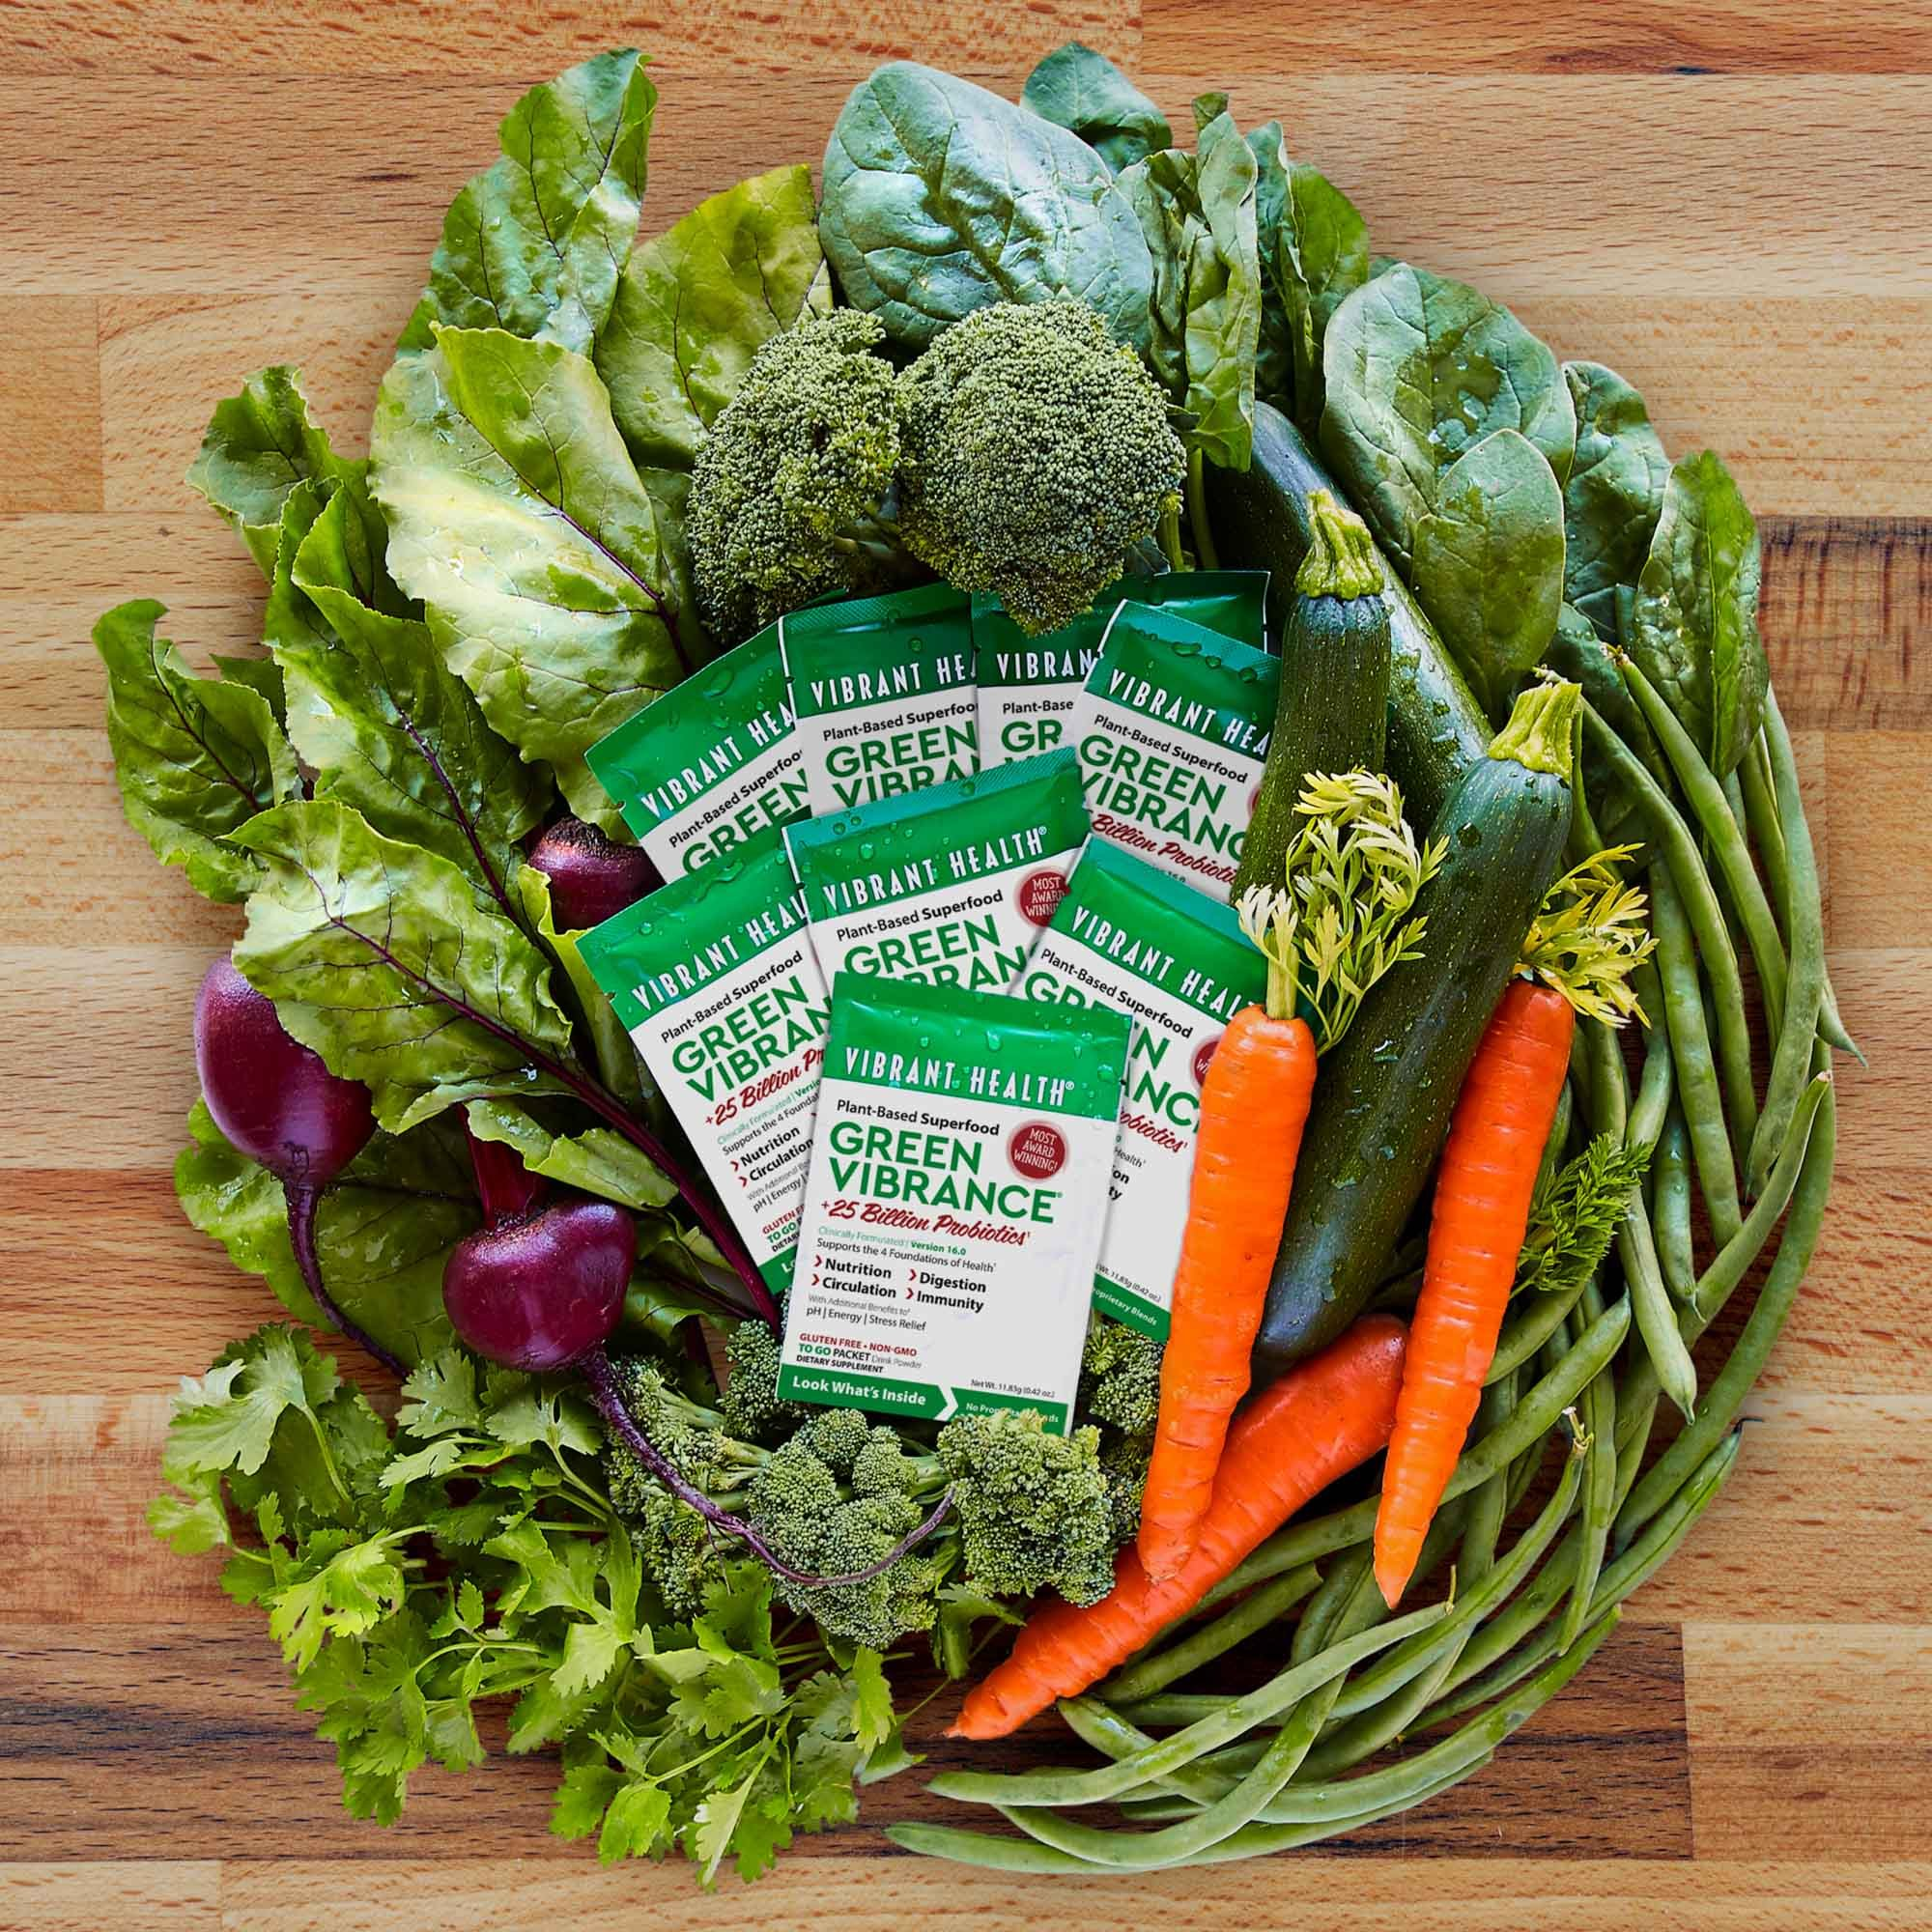 Vibrant Health - Green Vibrance, Plant-based Daily Superfood + Protein and Antioxidants, 15 Packets by Vibrant Health (Image #7)